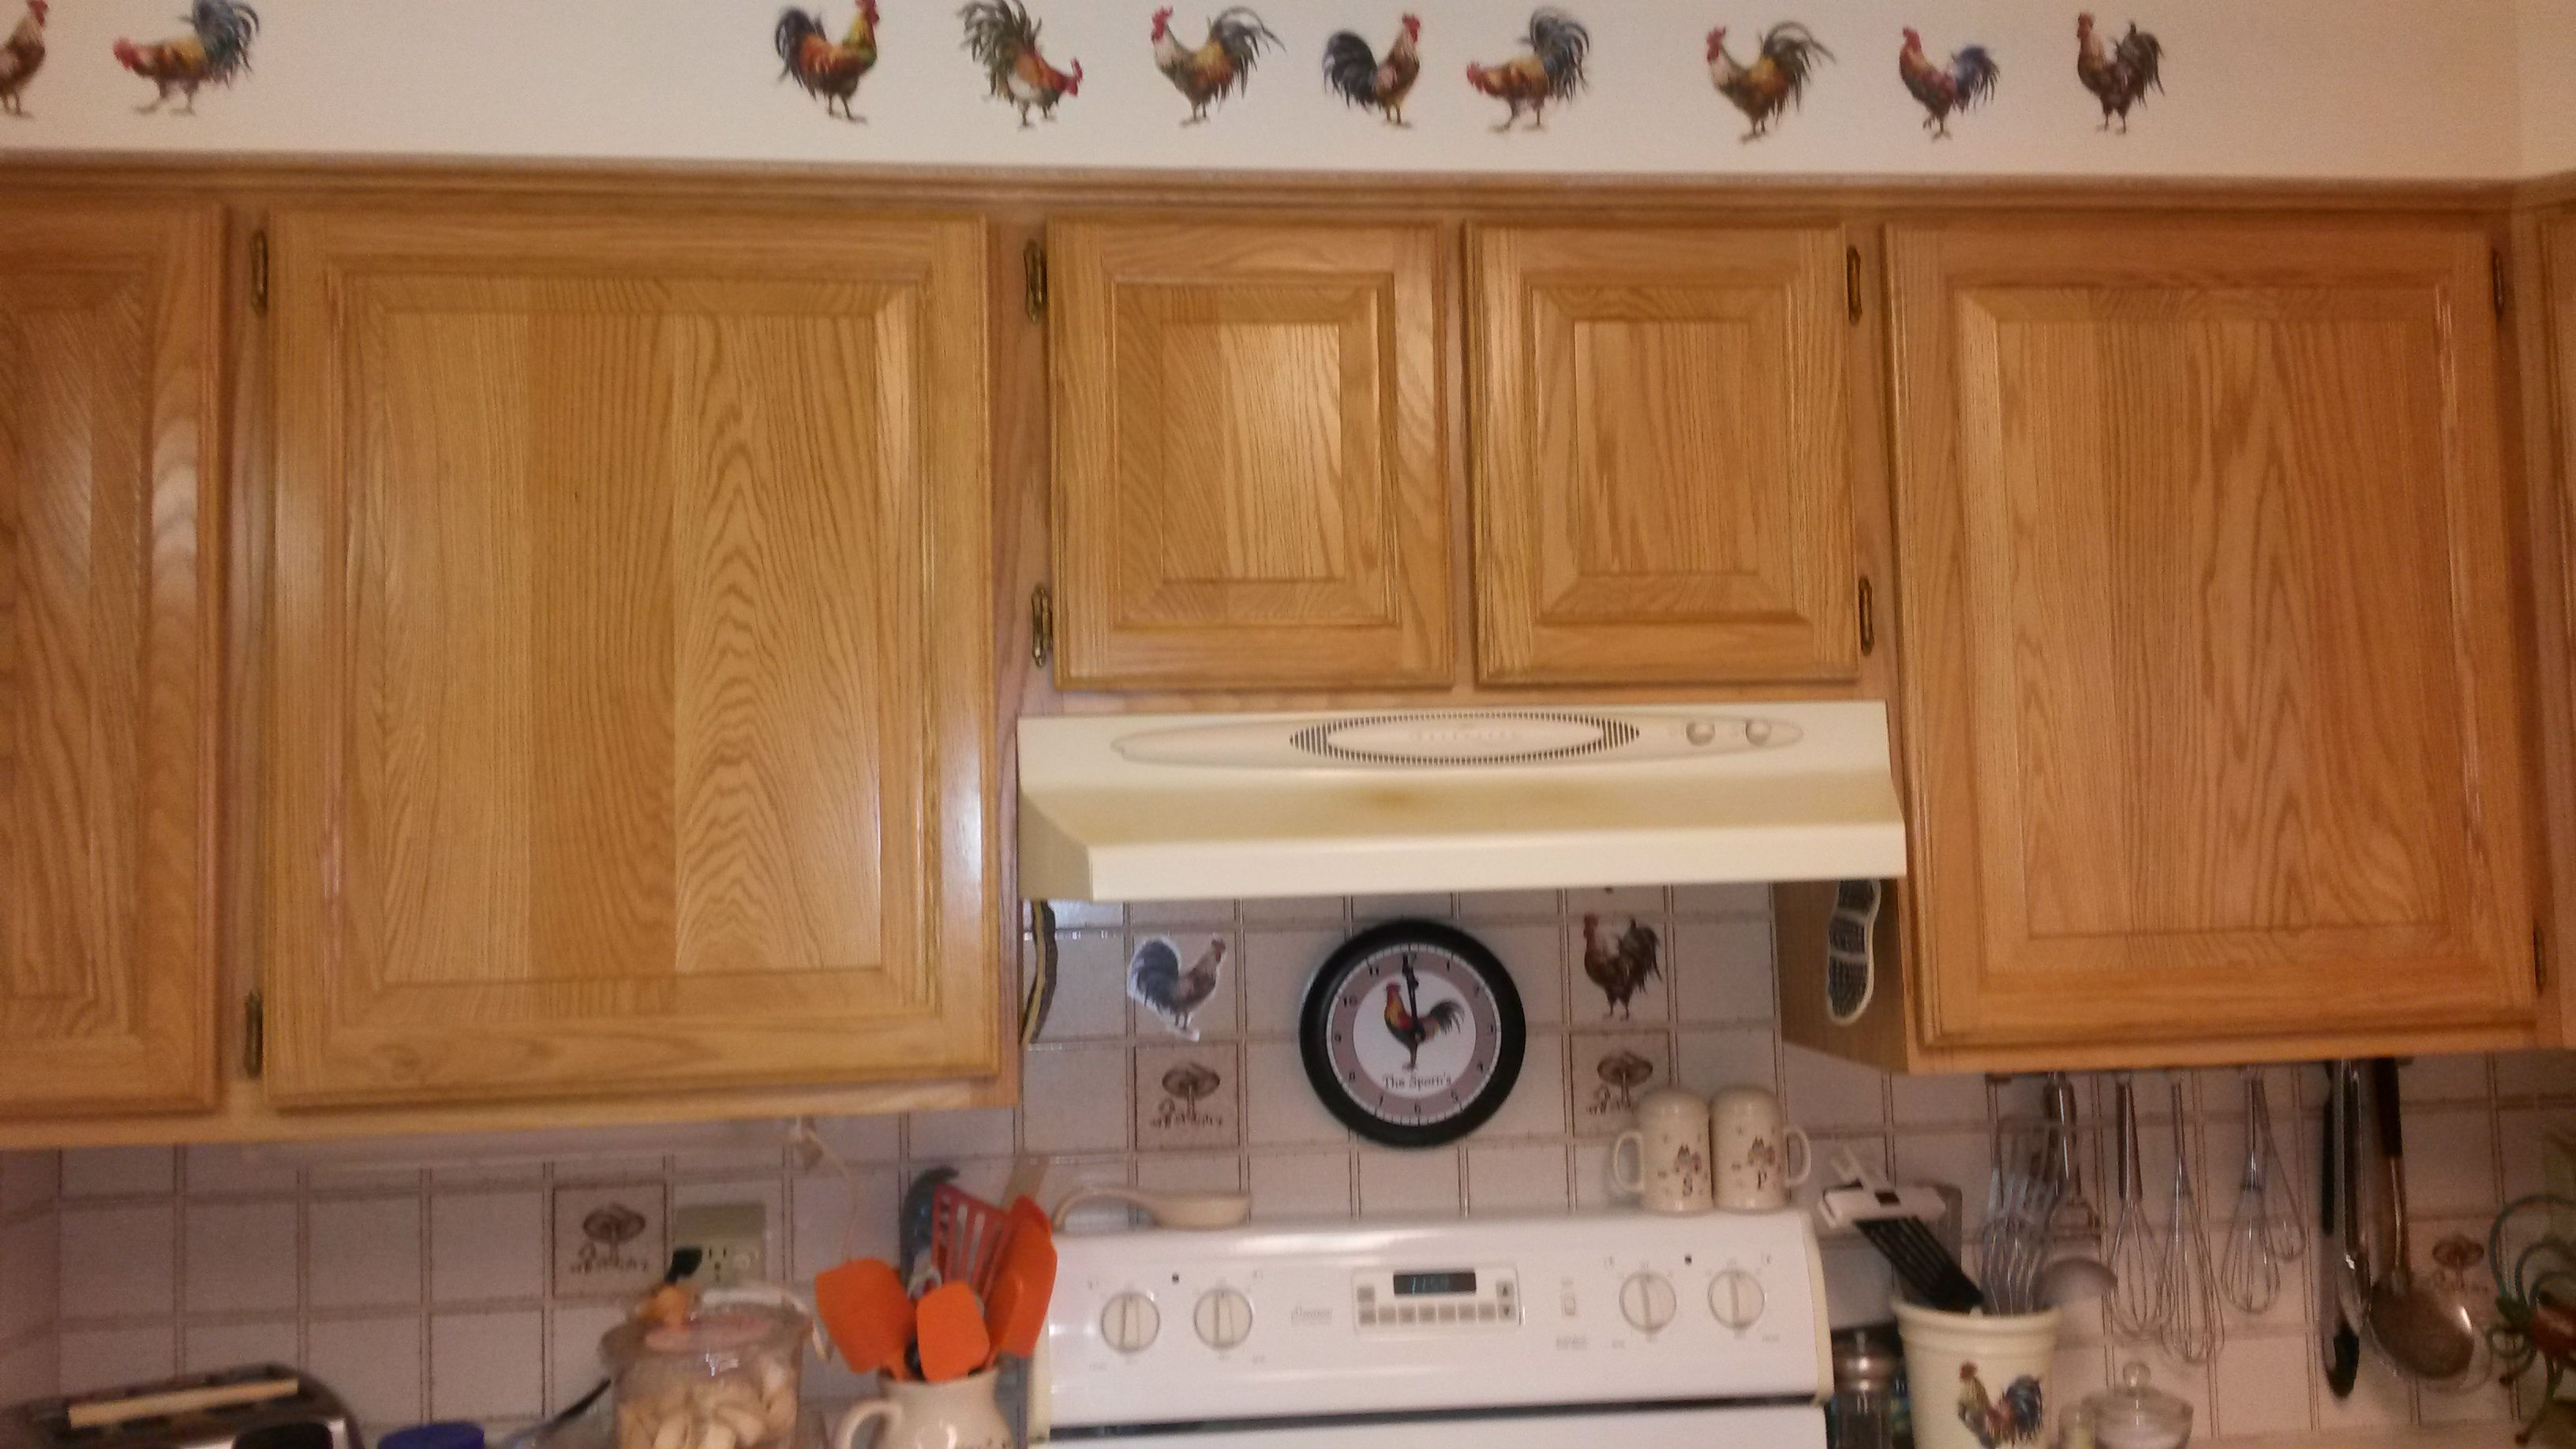 More kitchen and rooster decals over stove